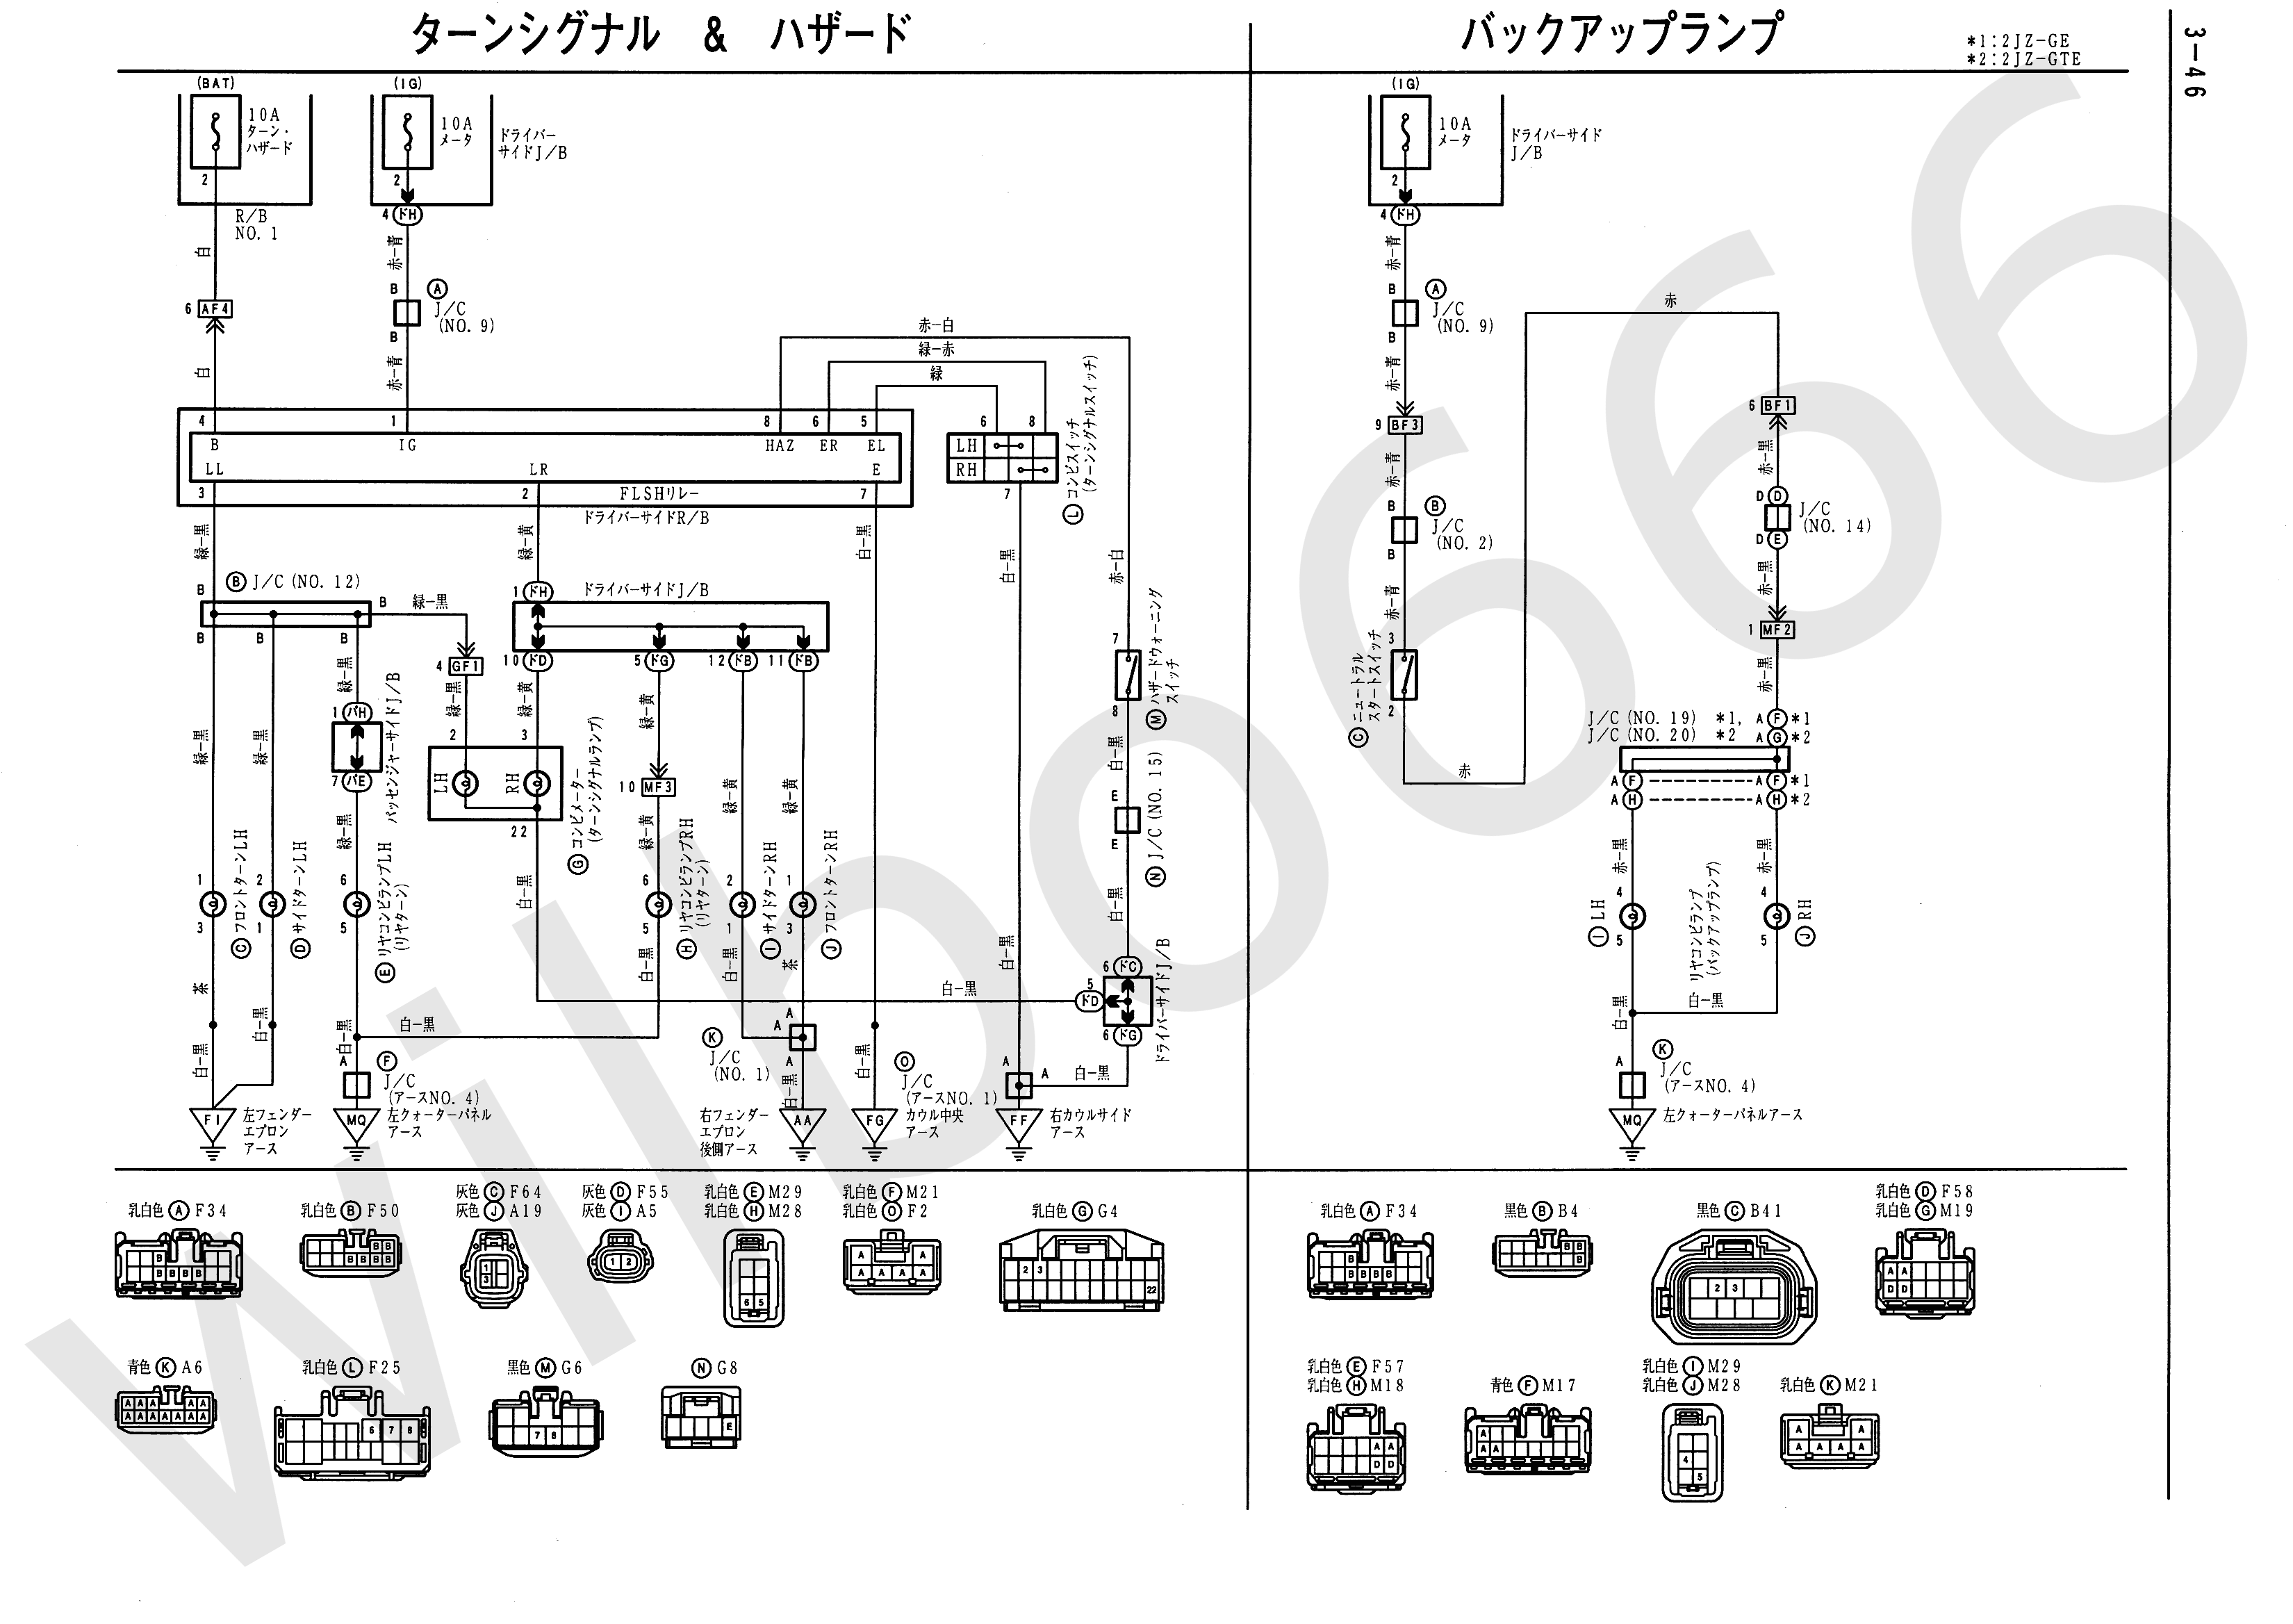 JZS161 Electrical Wiring Diagram 6748505 3 46 wilbo666 2jz gte vvti jzs161 aristo engine wiring 2jz wiring diagram at gsmportal.co